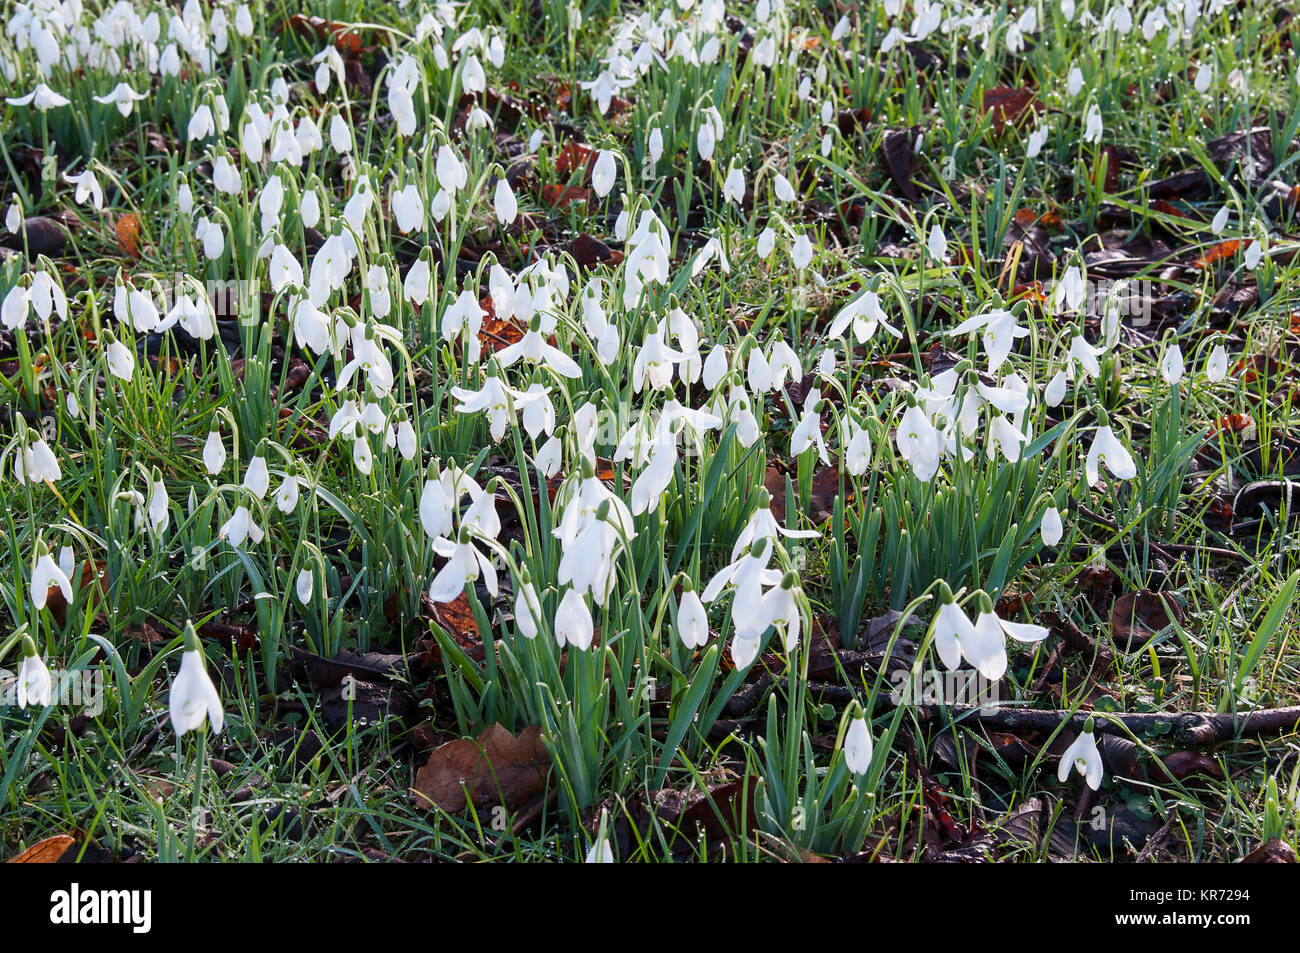 Snowdrop galanthus small white flowers growing outdoor in grass snowdrop galanthus small white flowers growing outdoor in grass mightylinksfo